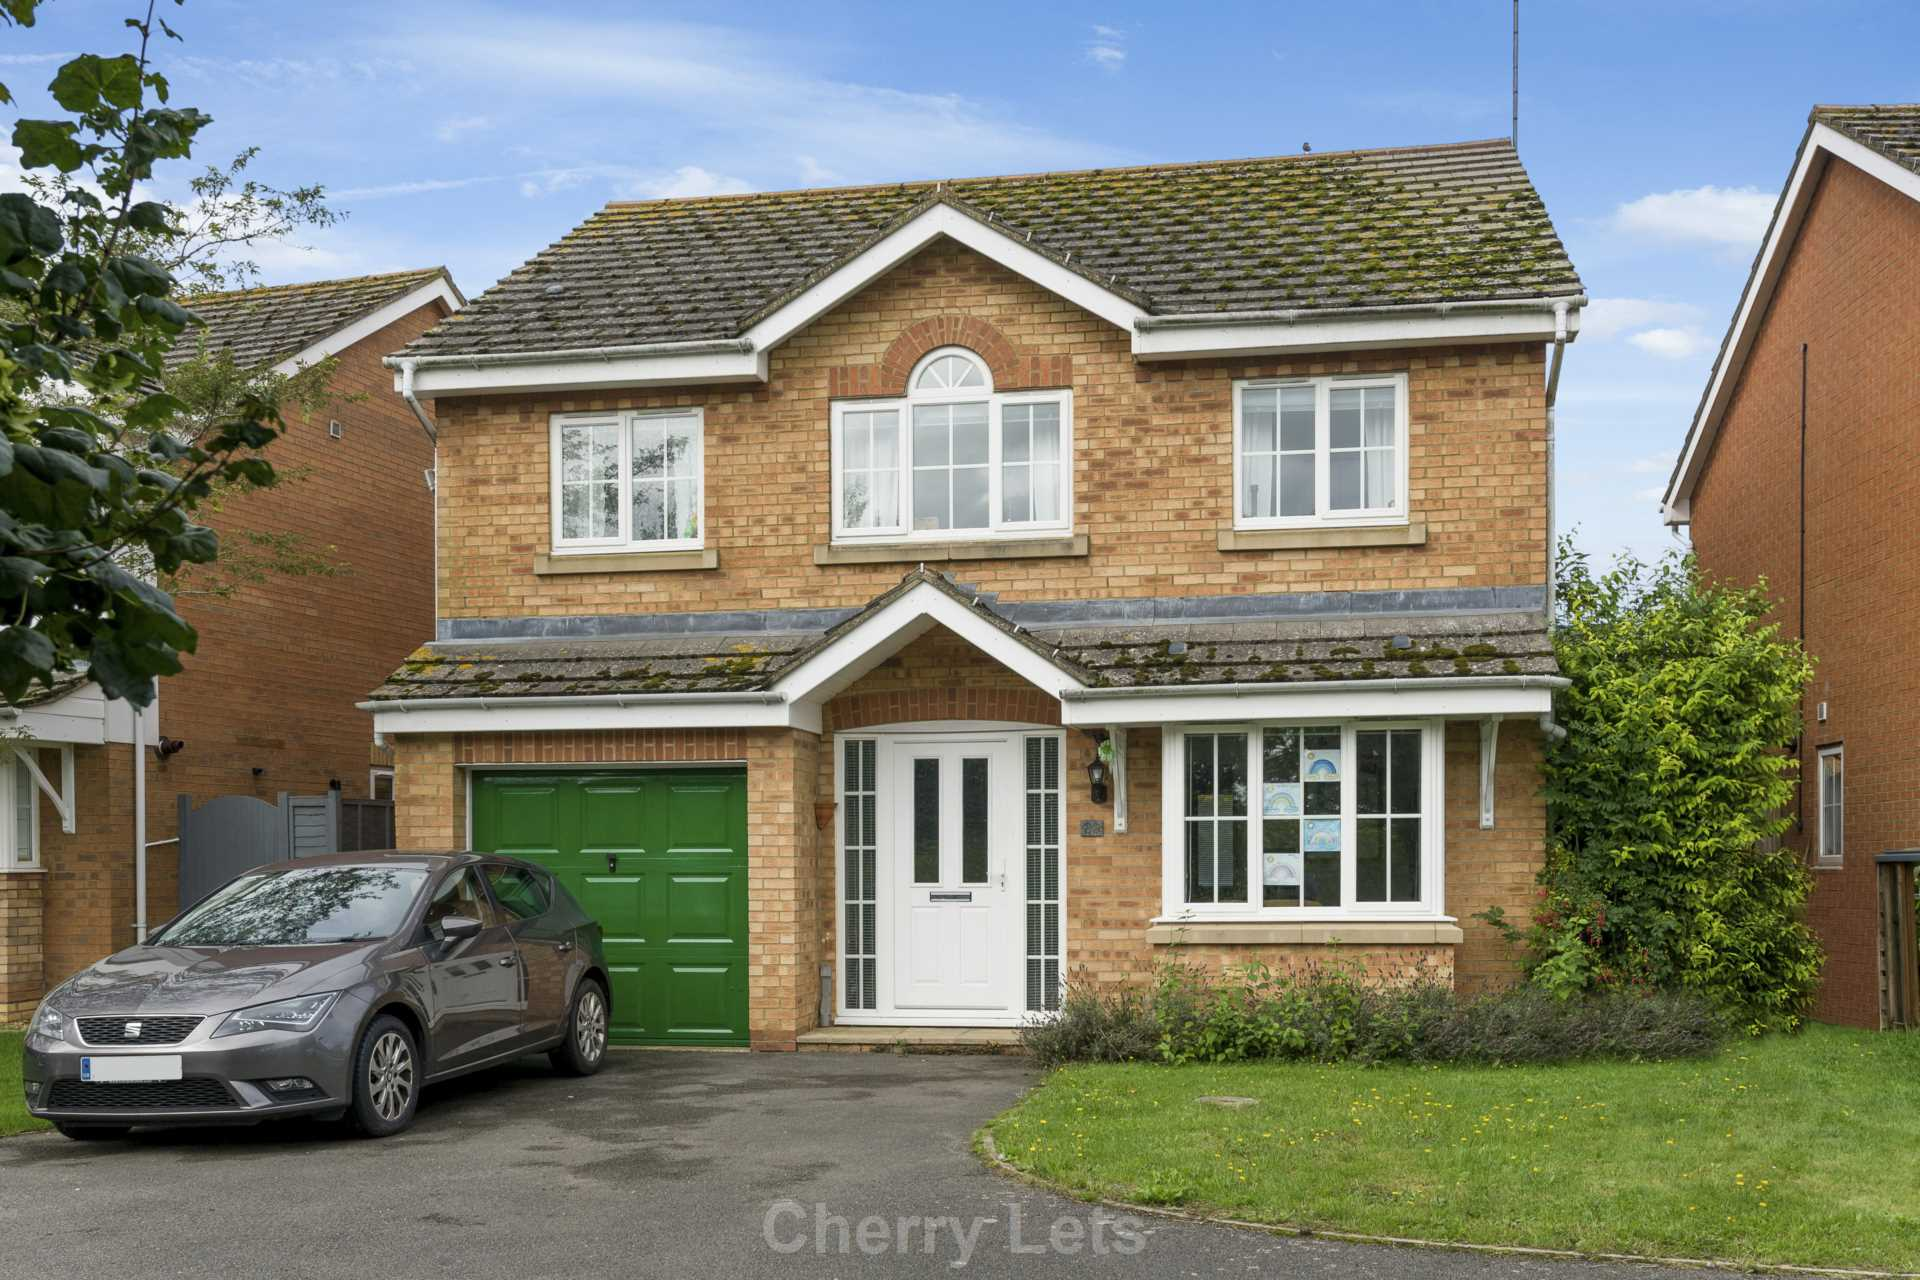 4 bed detached house to rent in Humphries Drive, Brackley, NN13 1